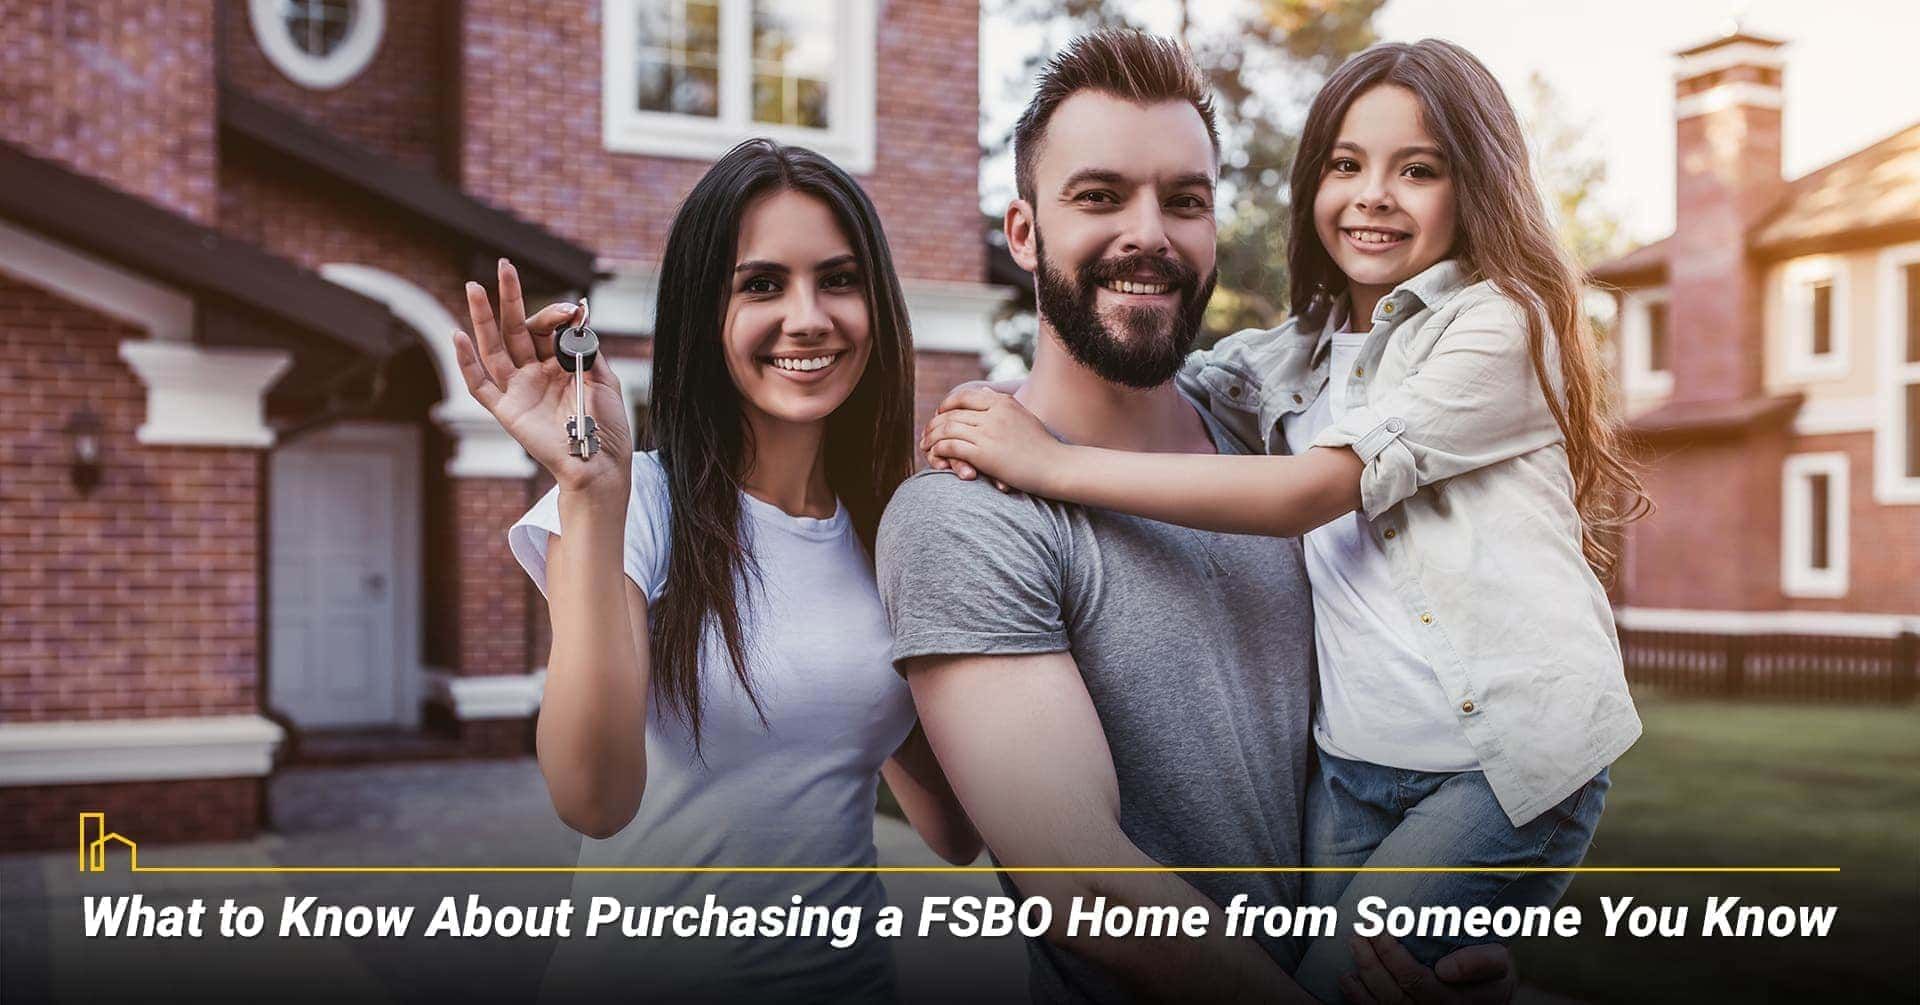 What to Know About Purchasing a FSBO Home from Someone You Know, things to consider when buying a FSBO home from an acquaint